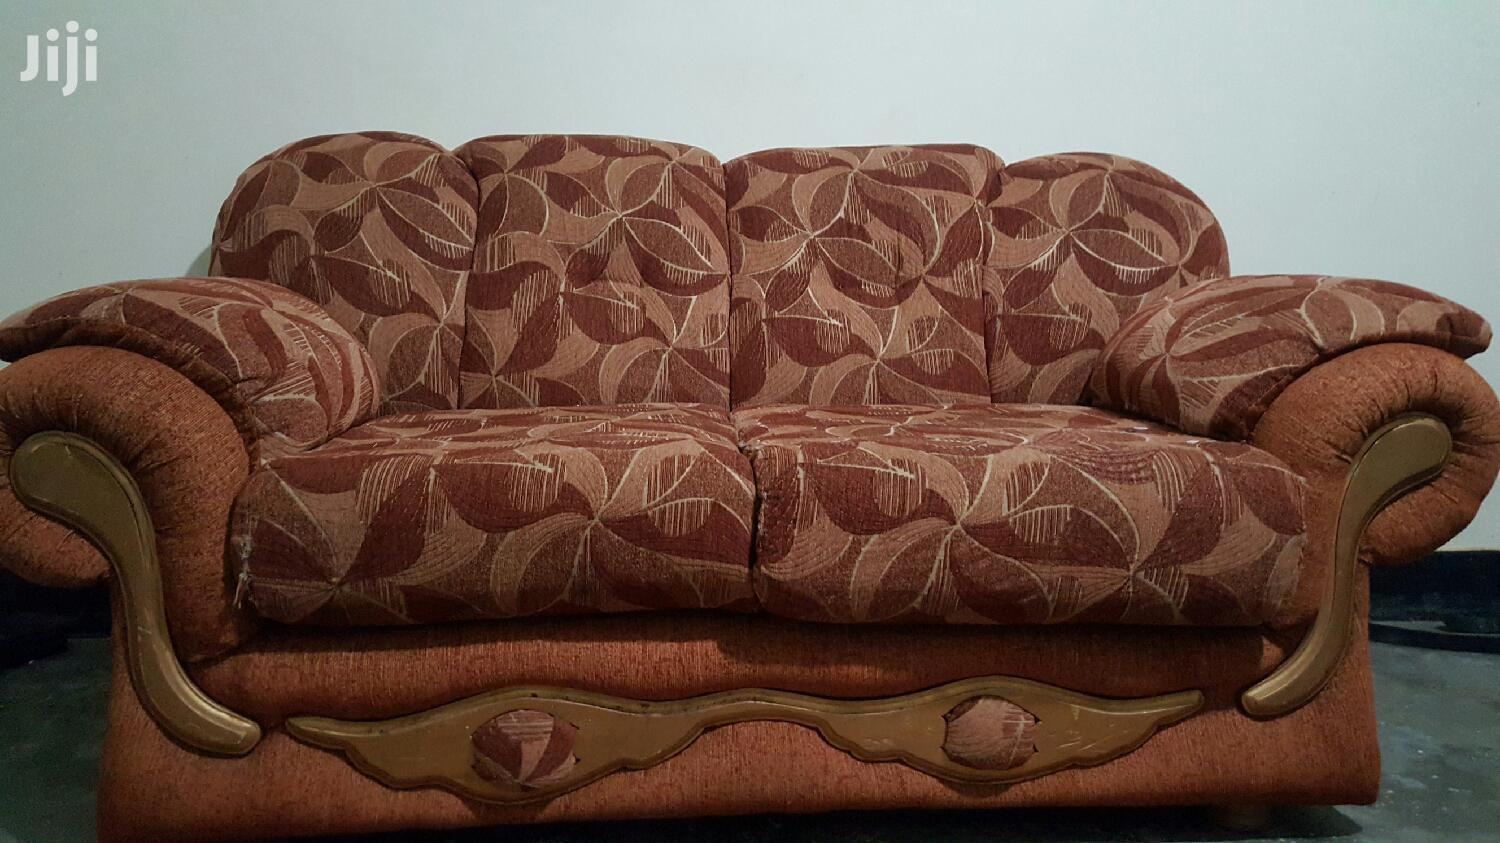 Archive: Sofa Set. 7 Seater